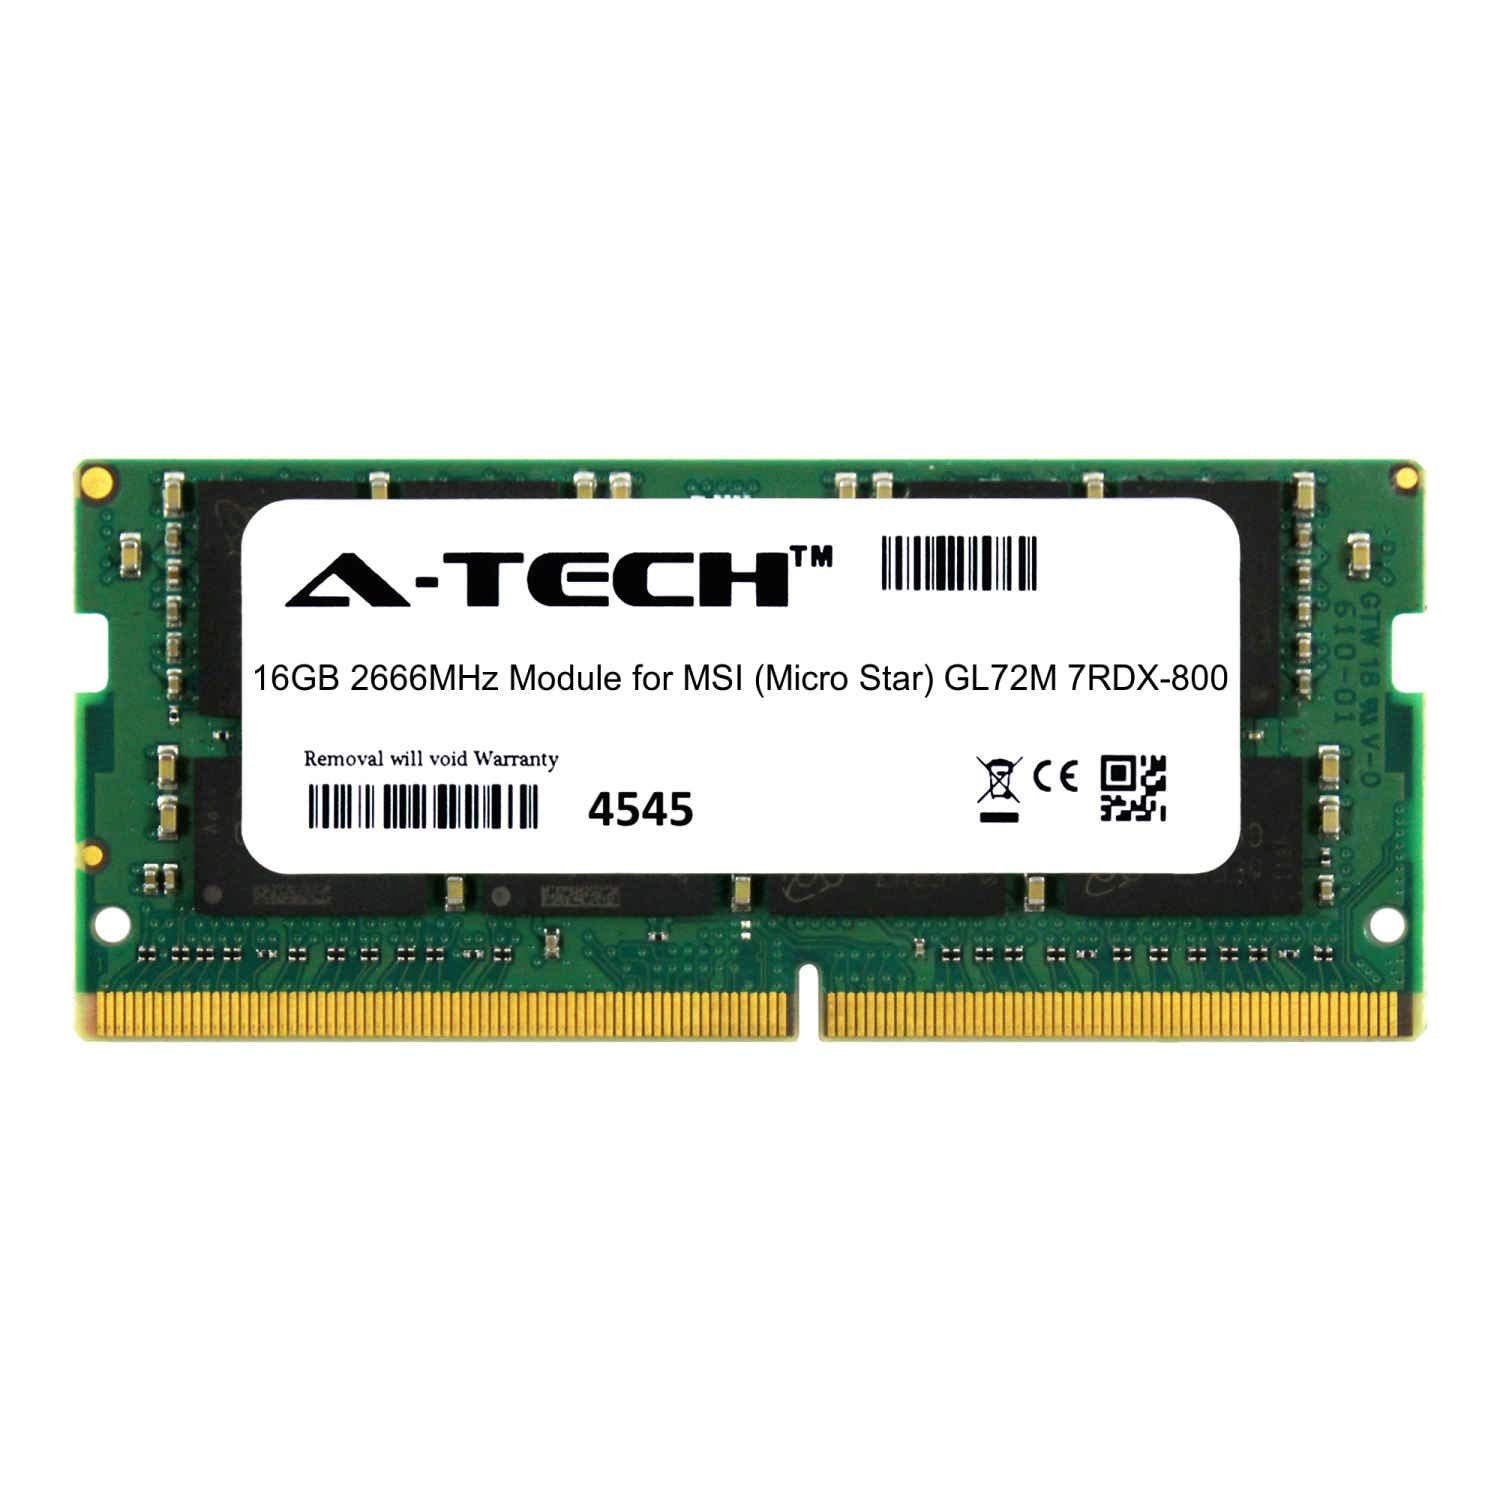 A-Tech 16GB Module for MSI (Micro Star) GL72M 7RDX-800 Laptop & Notebook Compatible DDR4 2666Mhz Memory Ram (ATMS368054A25832X1)